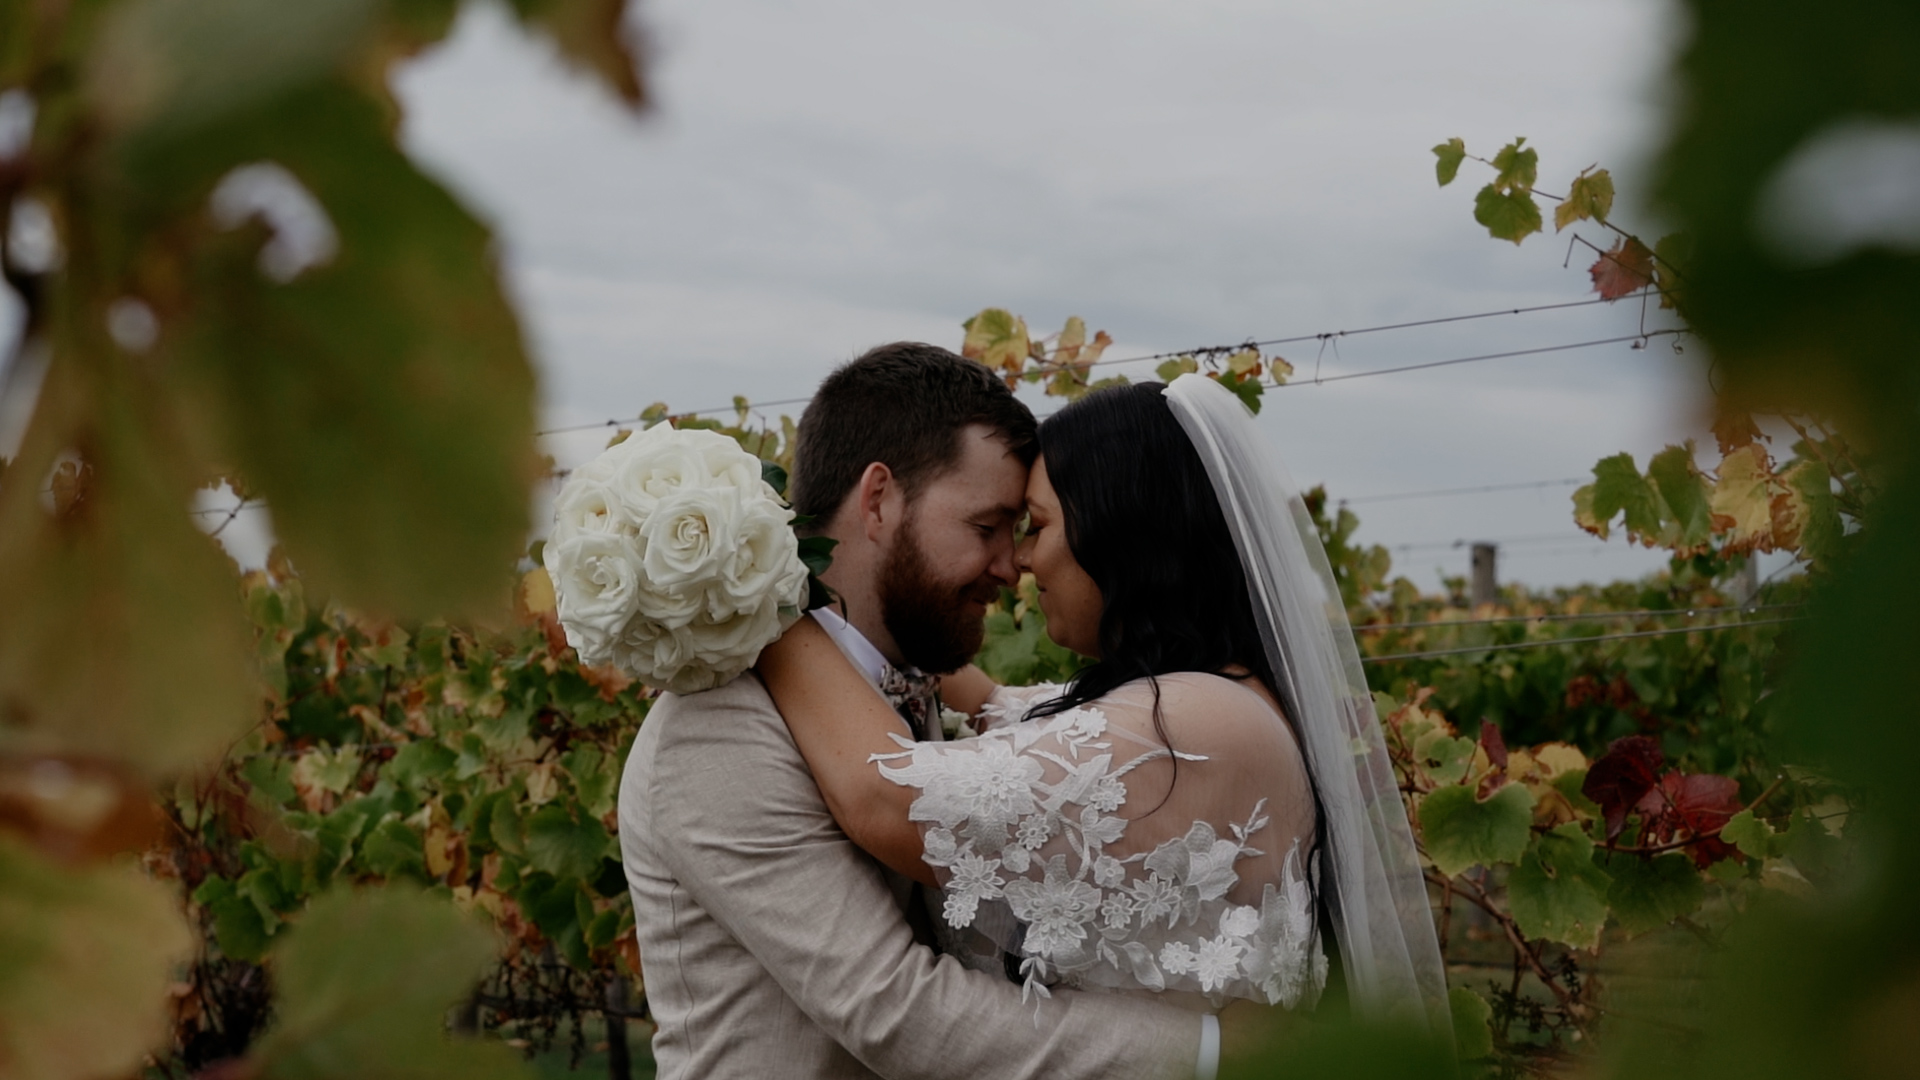 Couple embracing at white vineyard wedding with floral details